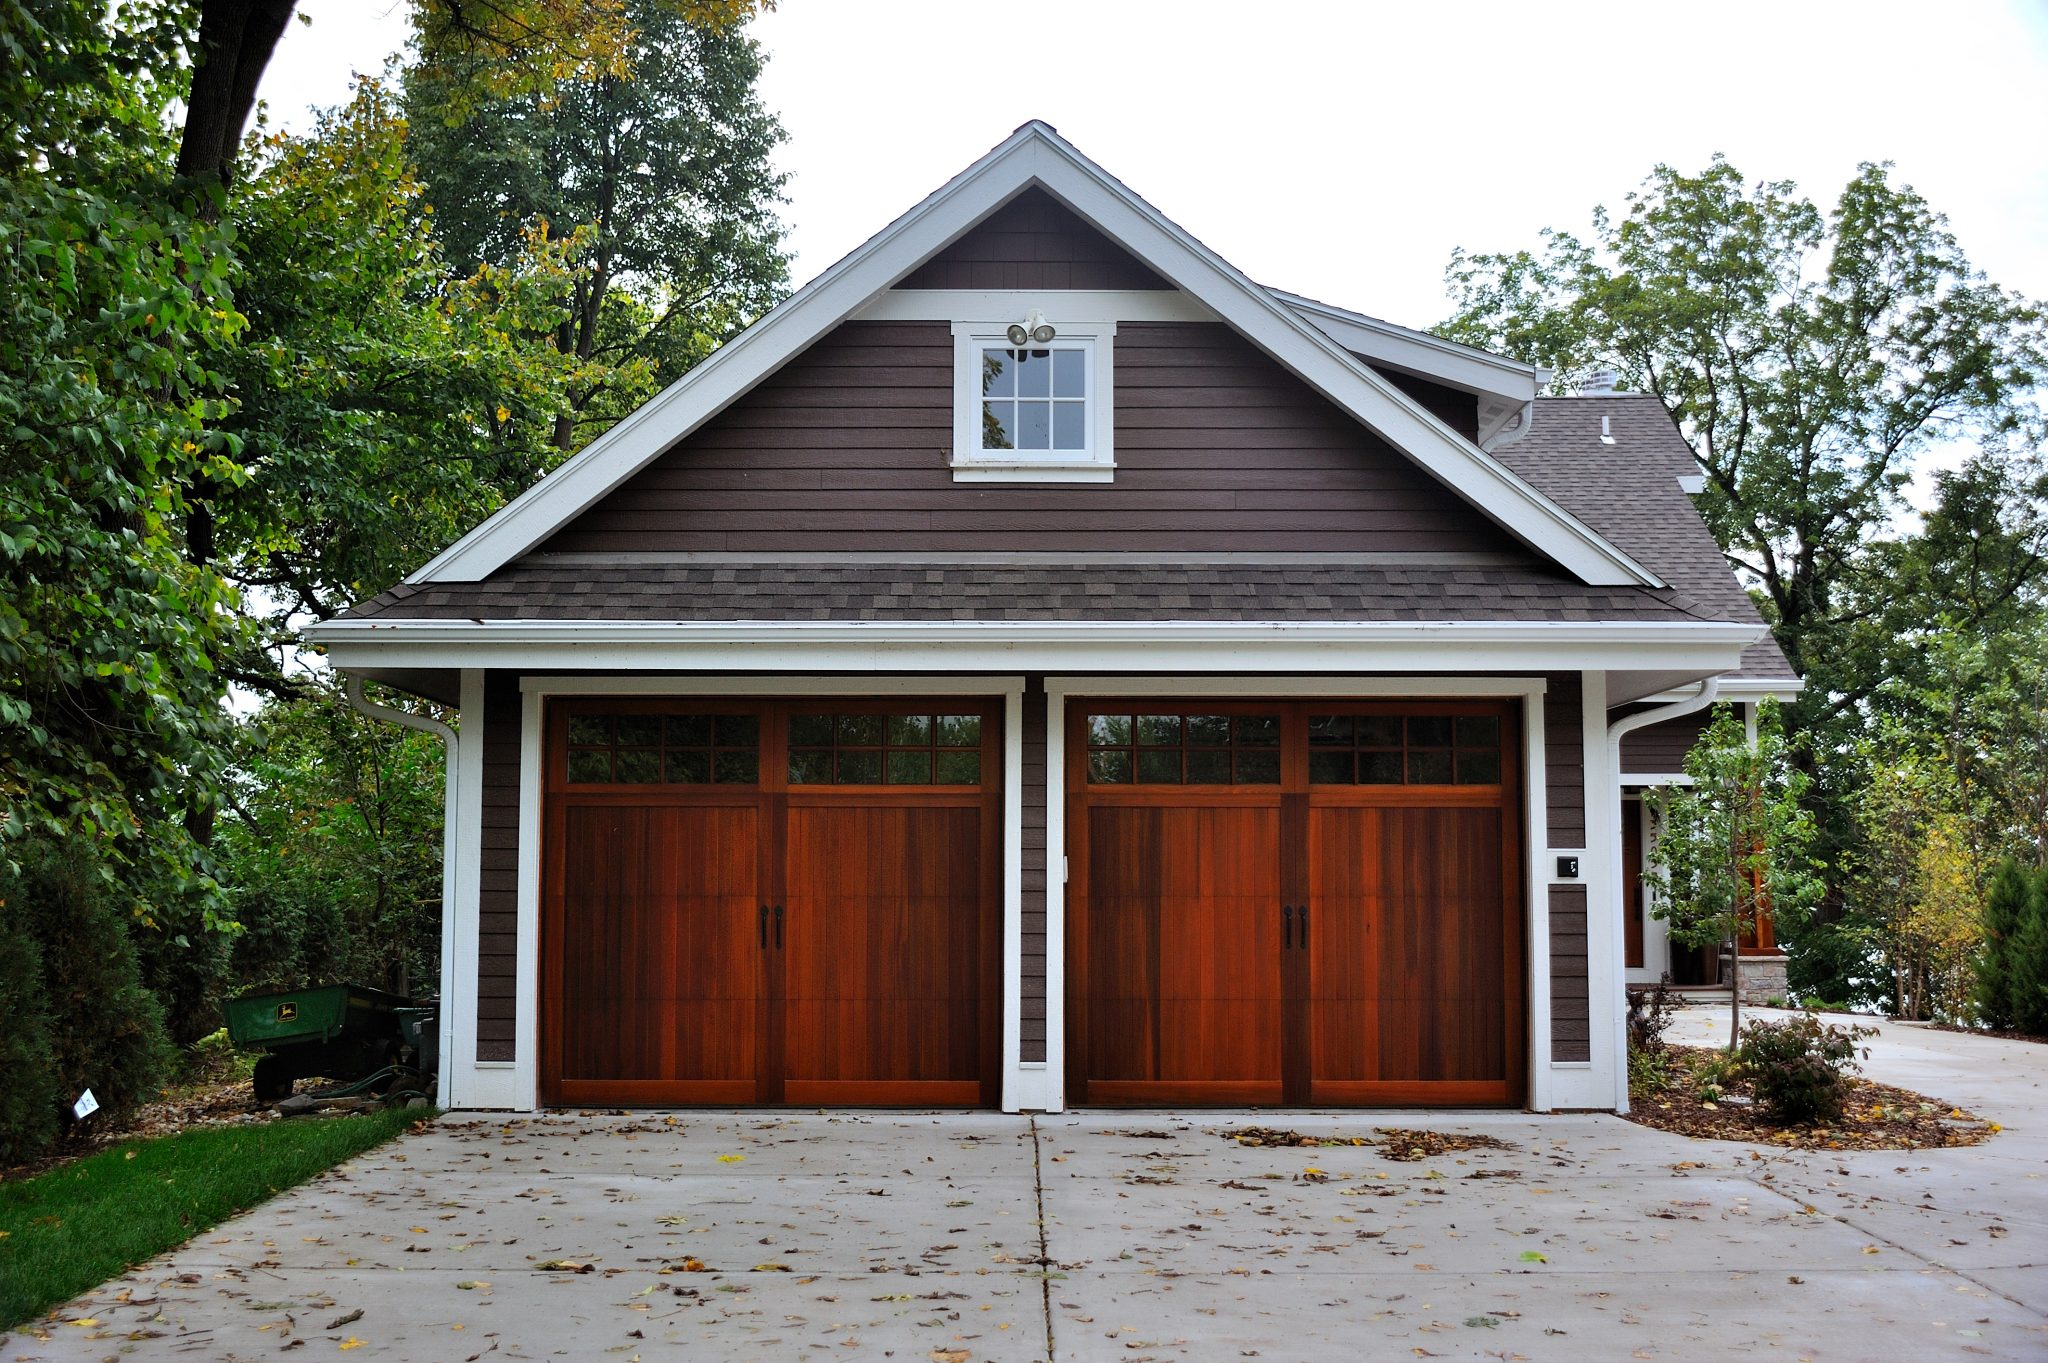 Chi Garage Doors : Overhead garage doors reviews free engine image